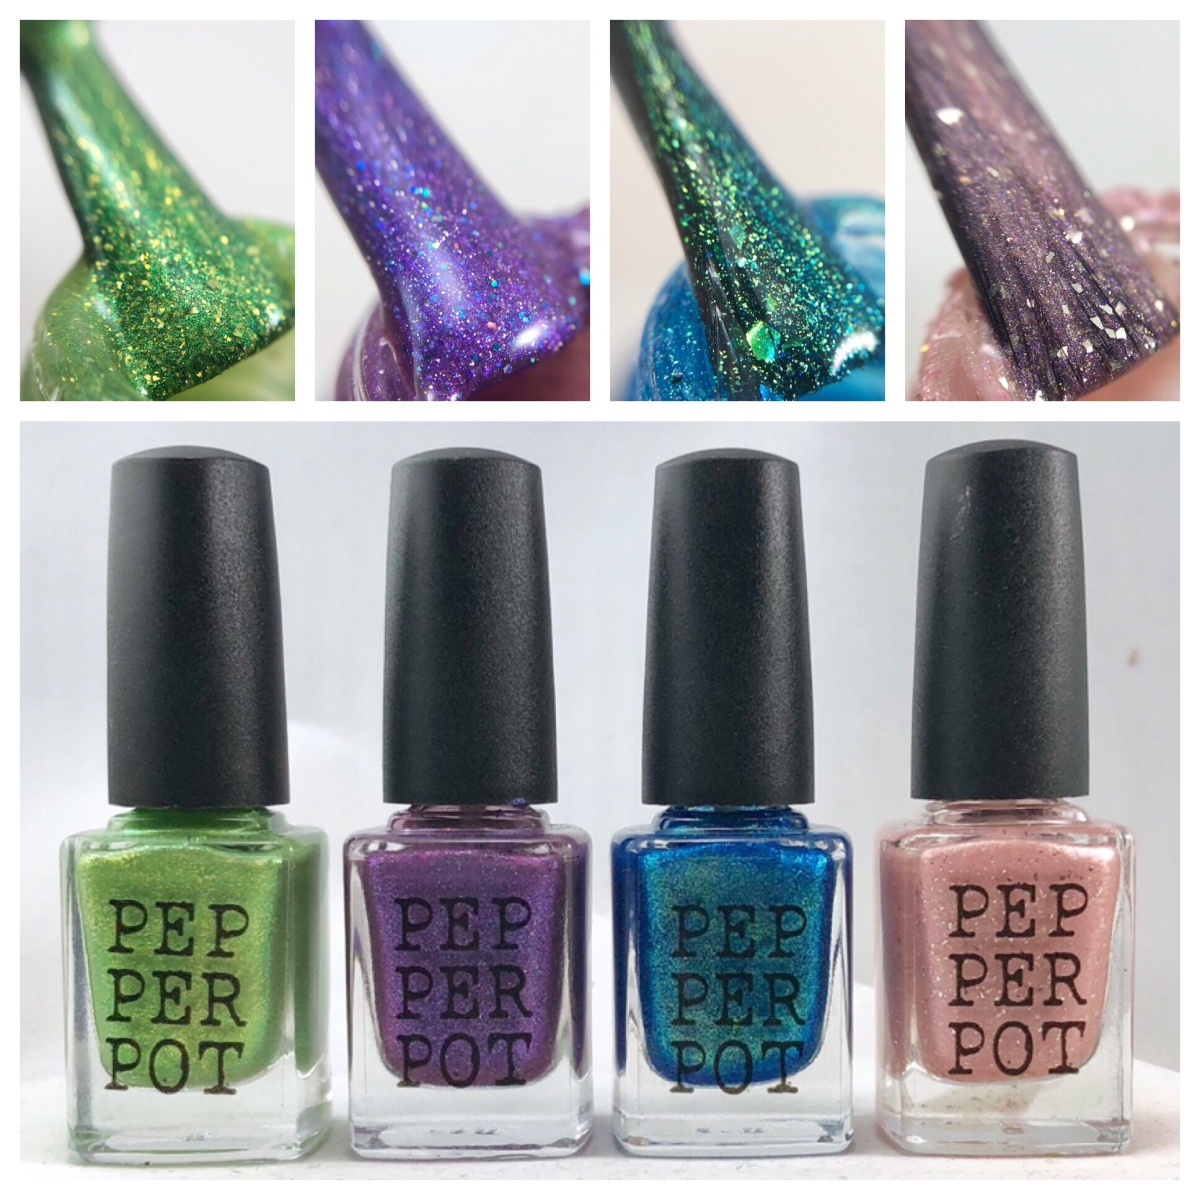 Pepper Pot Polish Wild Planet Collection